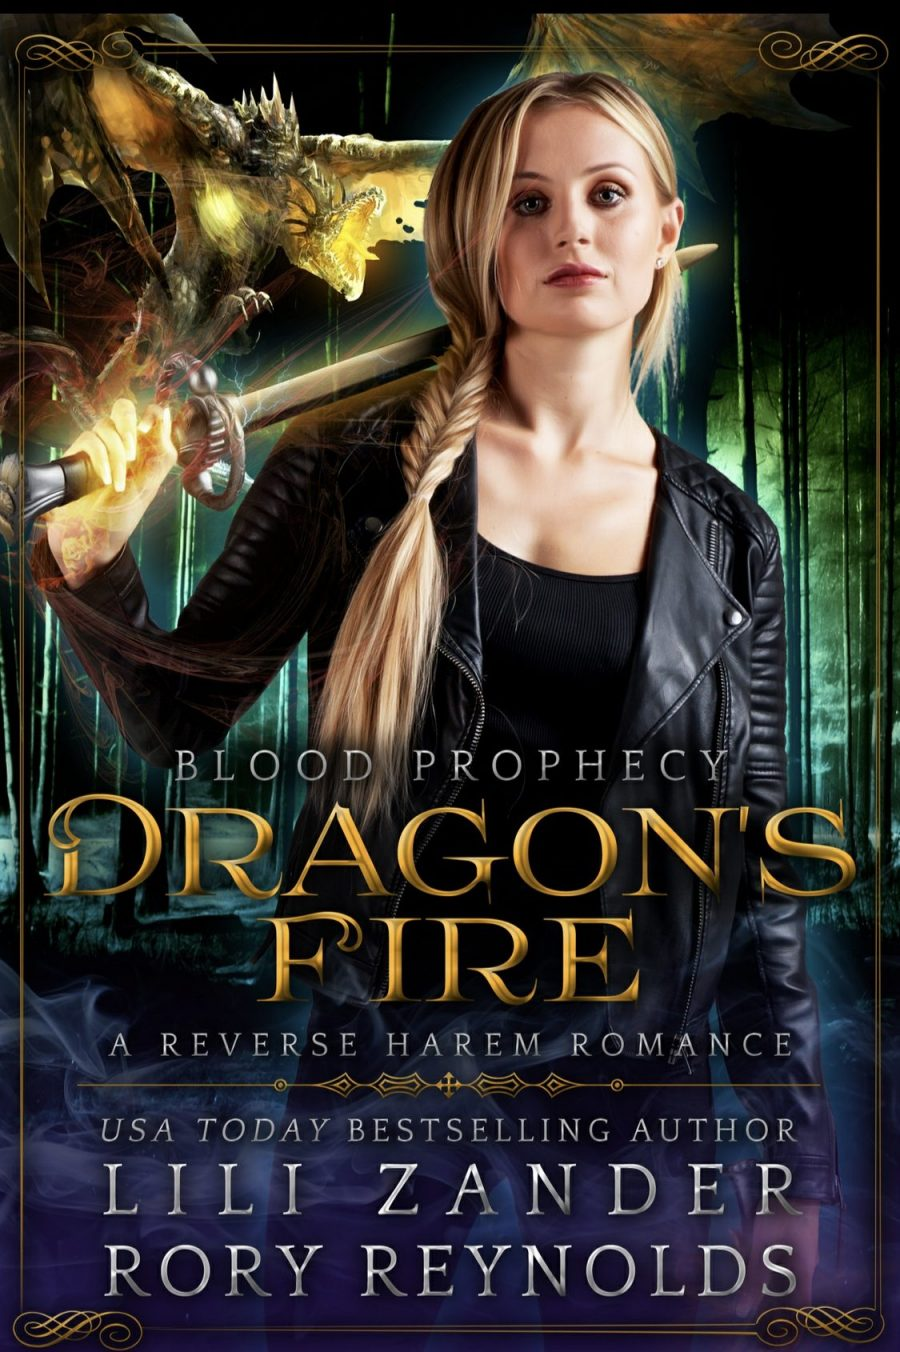 Dragon's Fire by Lili Zander and Rory Reynolds – A Book Review